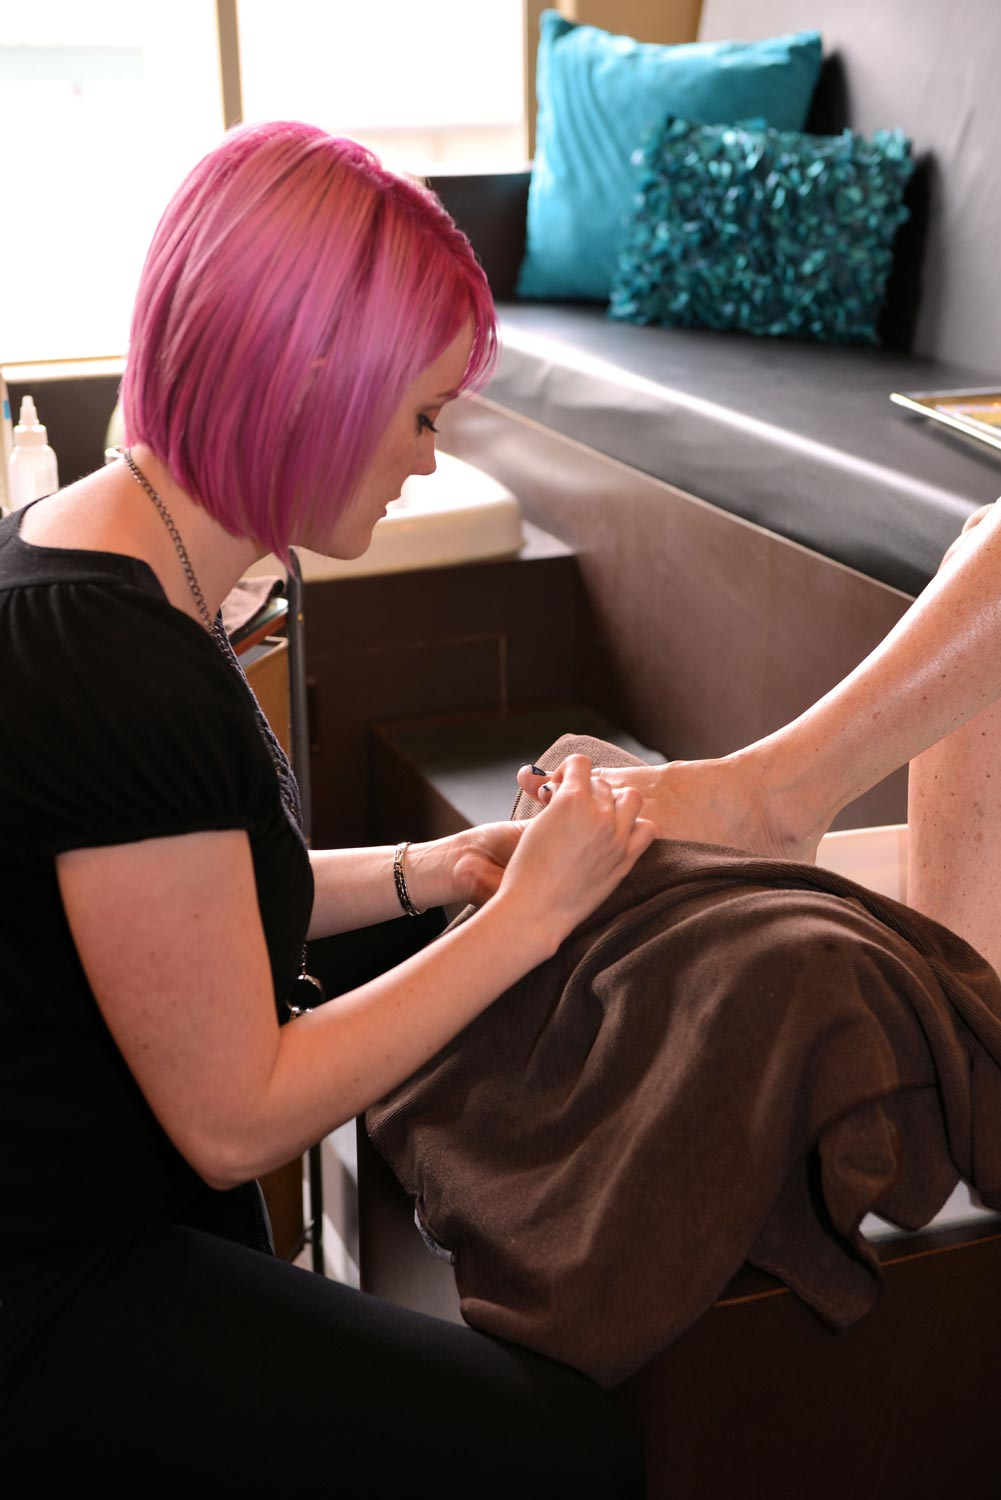 Pedicures are relaxing, while also keeping your feet smooth and prepped for any occasion.